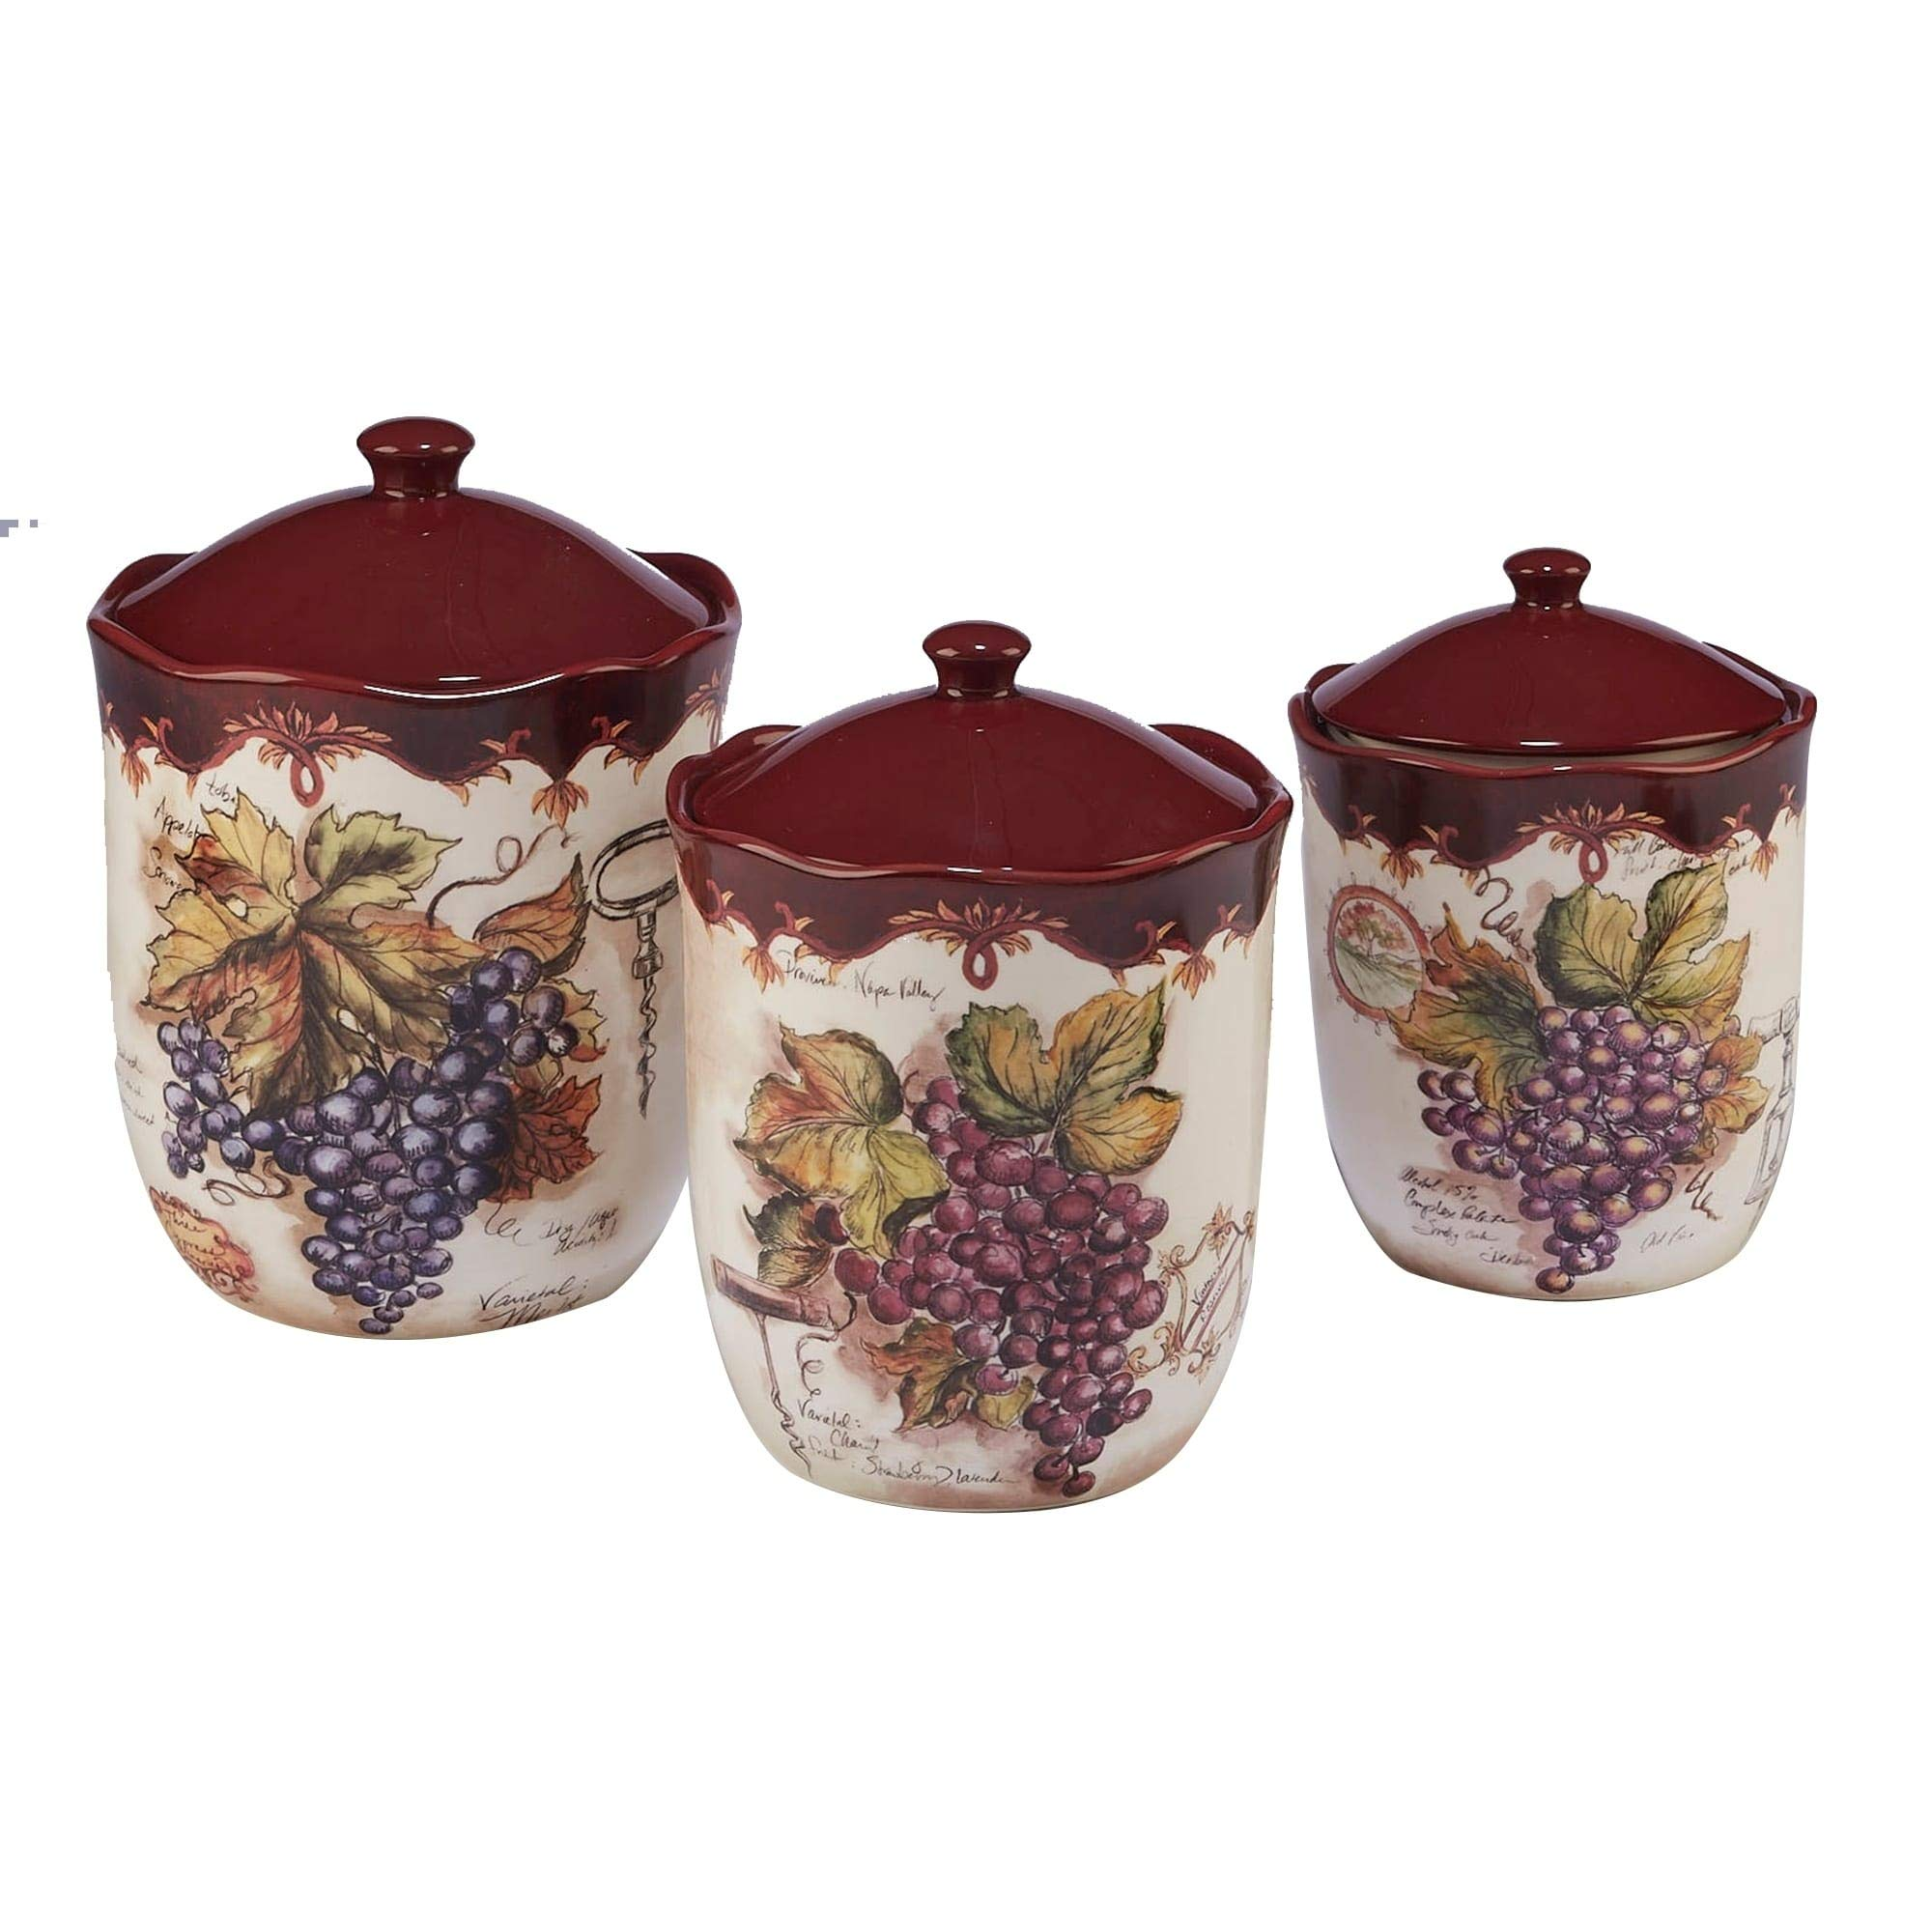 Certified International Corp 23740 Vintners Journal 3 piece Canister Set Multicolor